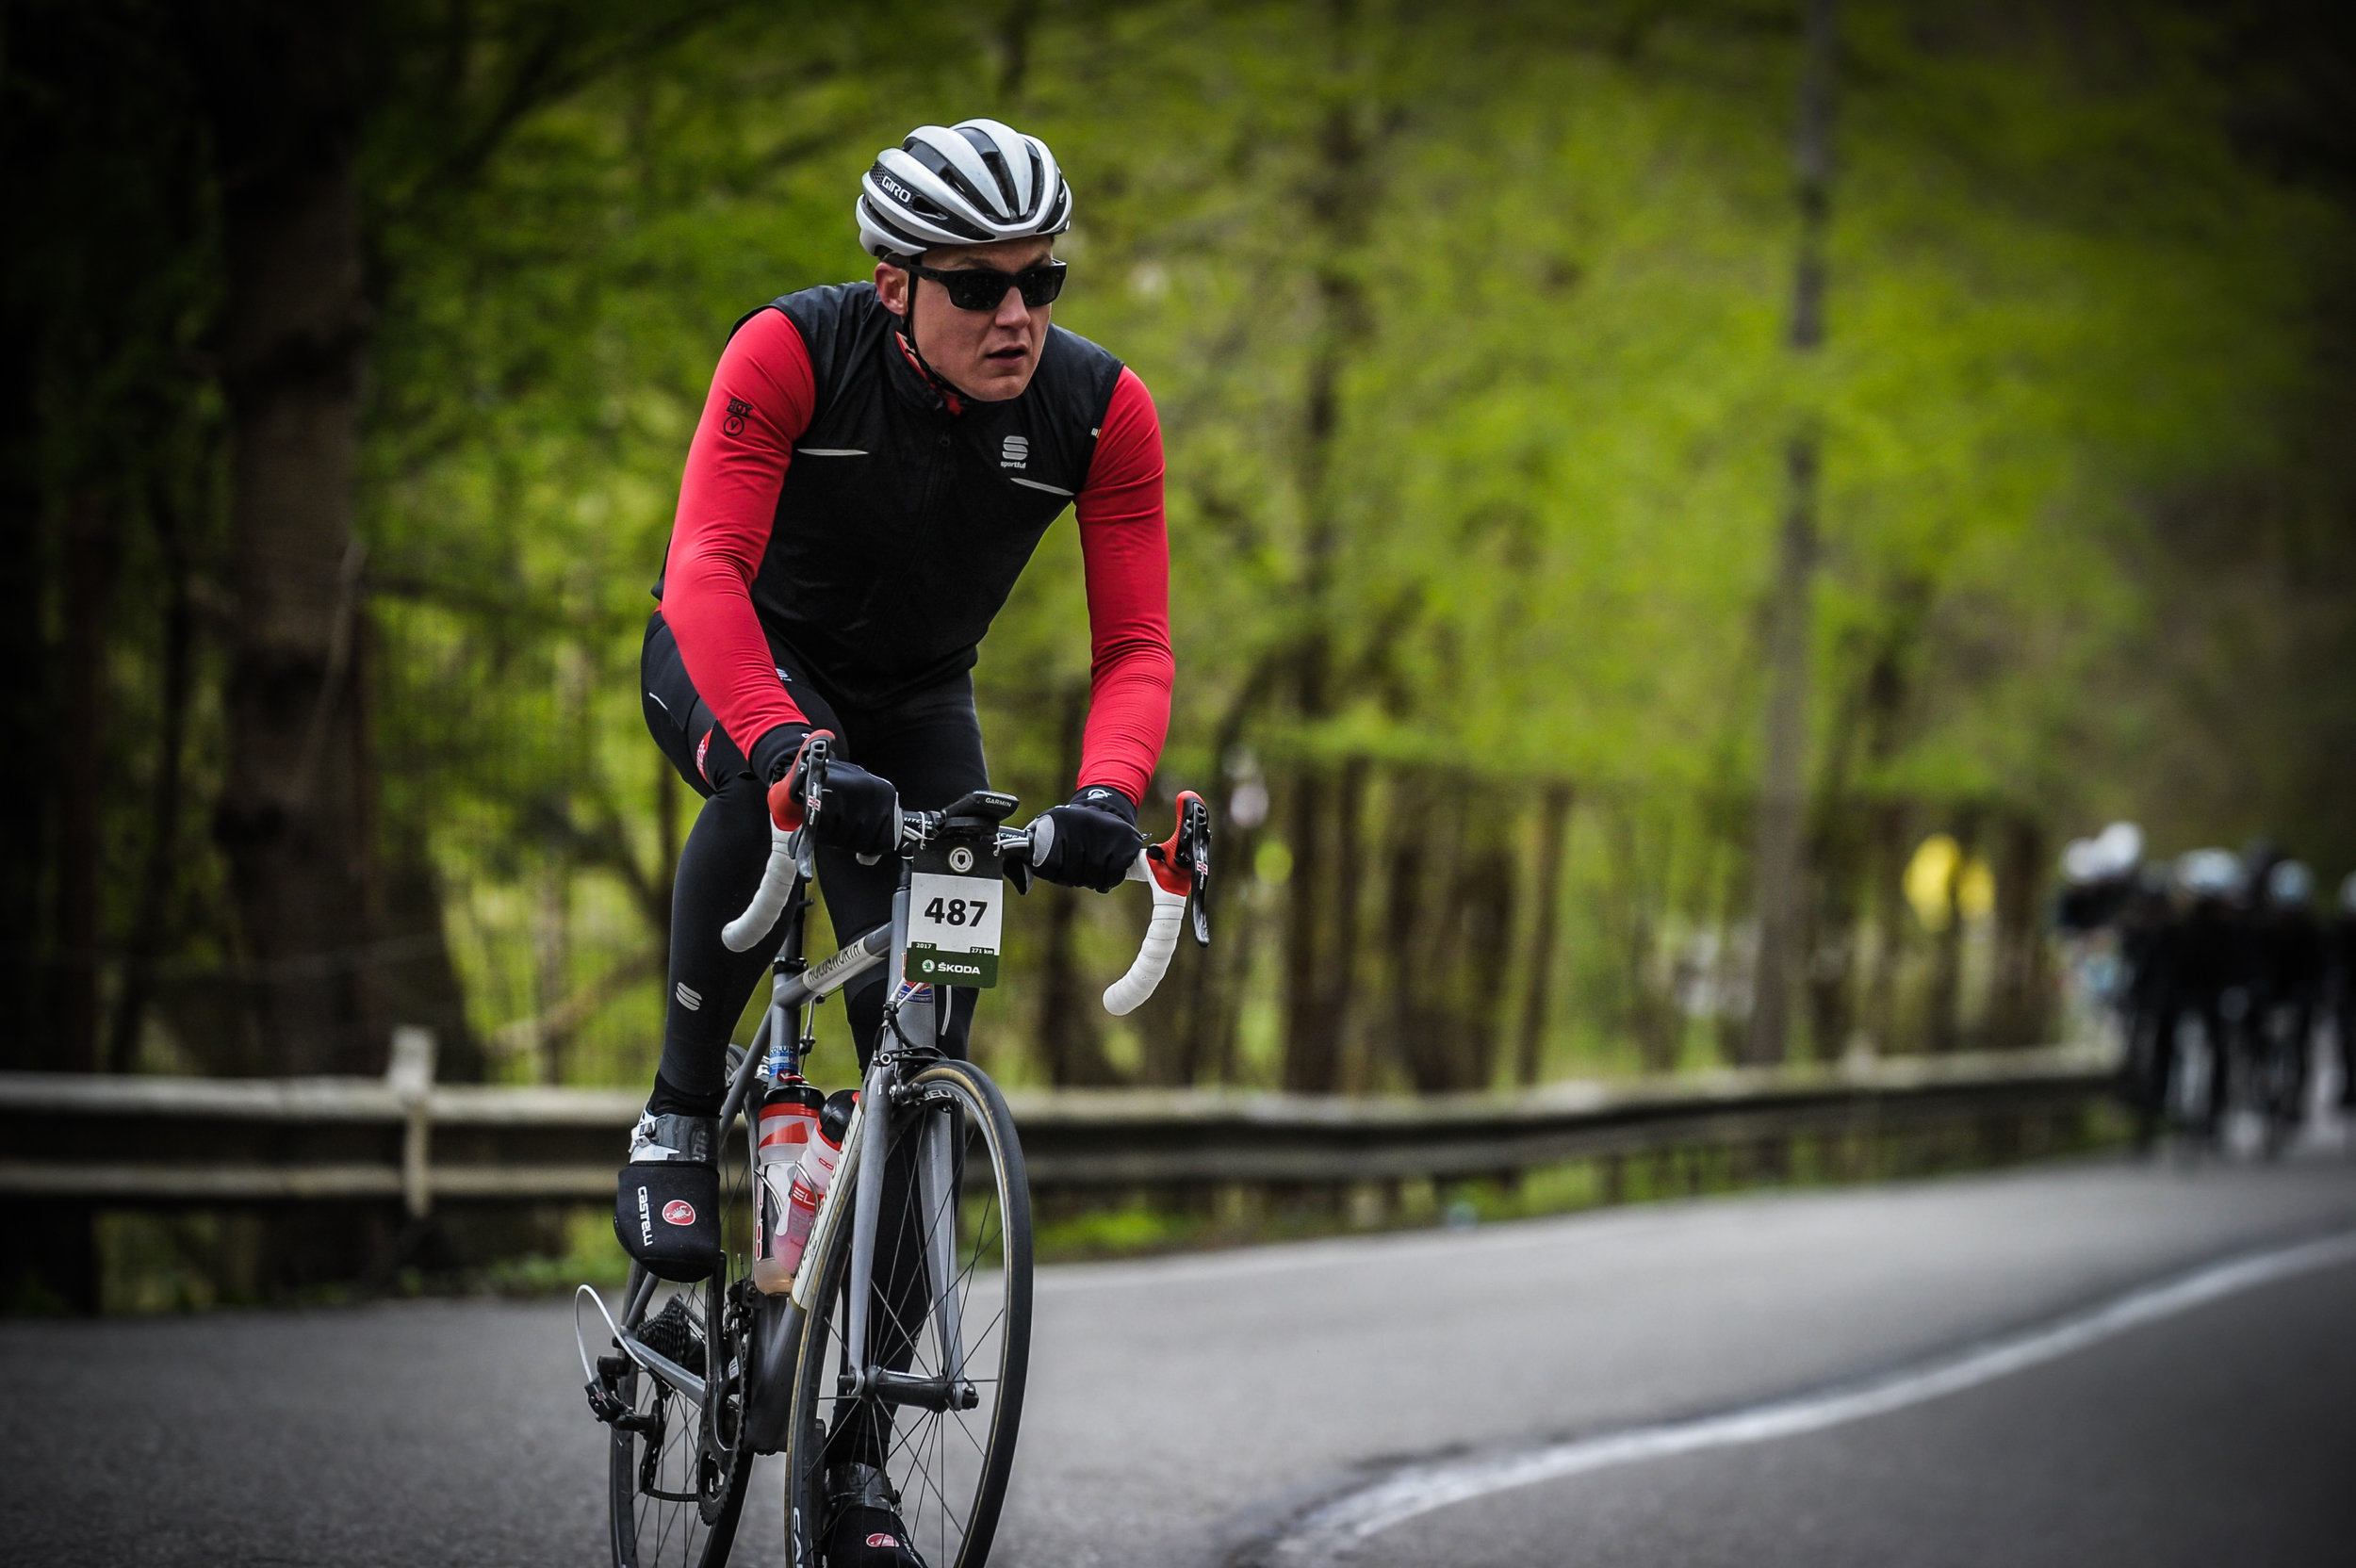 Riding the 273km Liege-Bastogne-Liege in April 2017